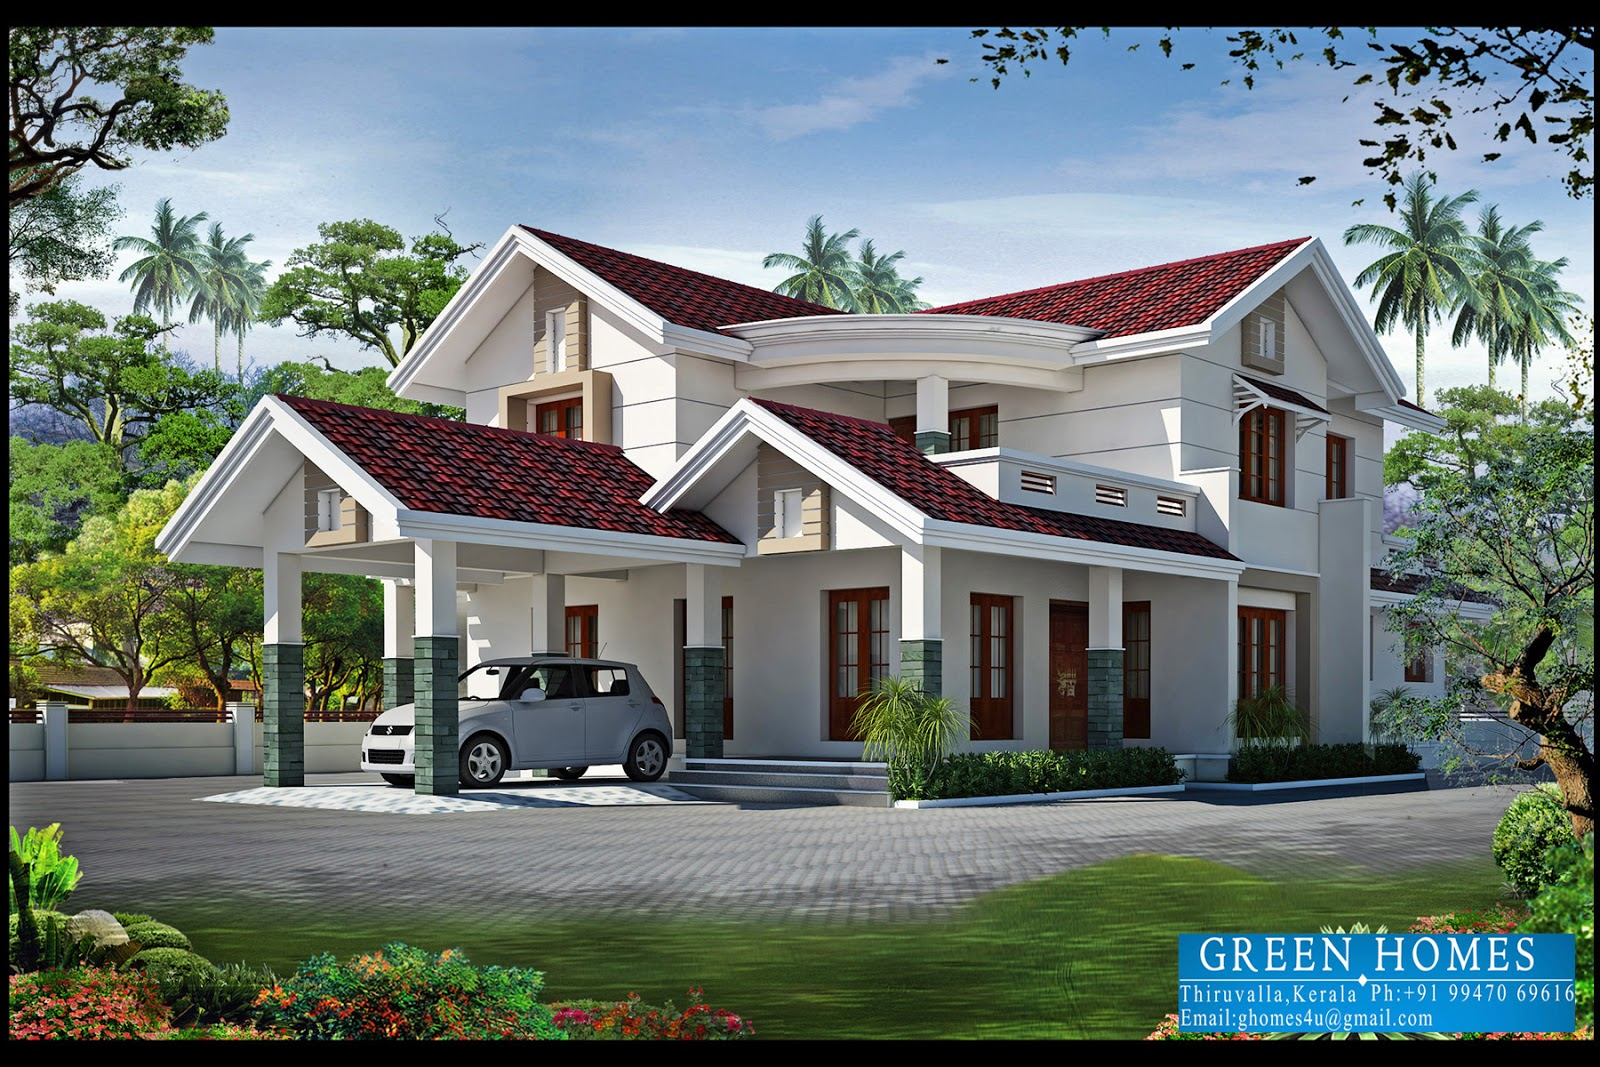 Green homes 4bhk kerala home design 2550 for Model house plan